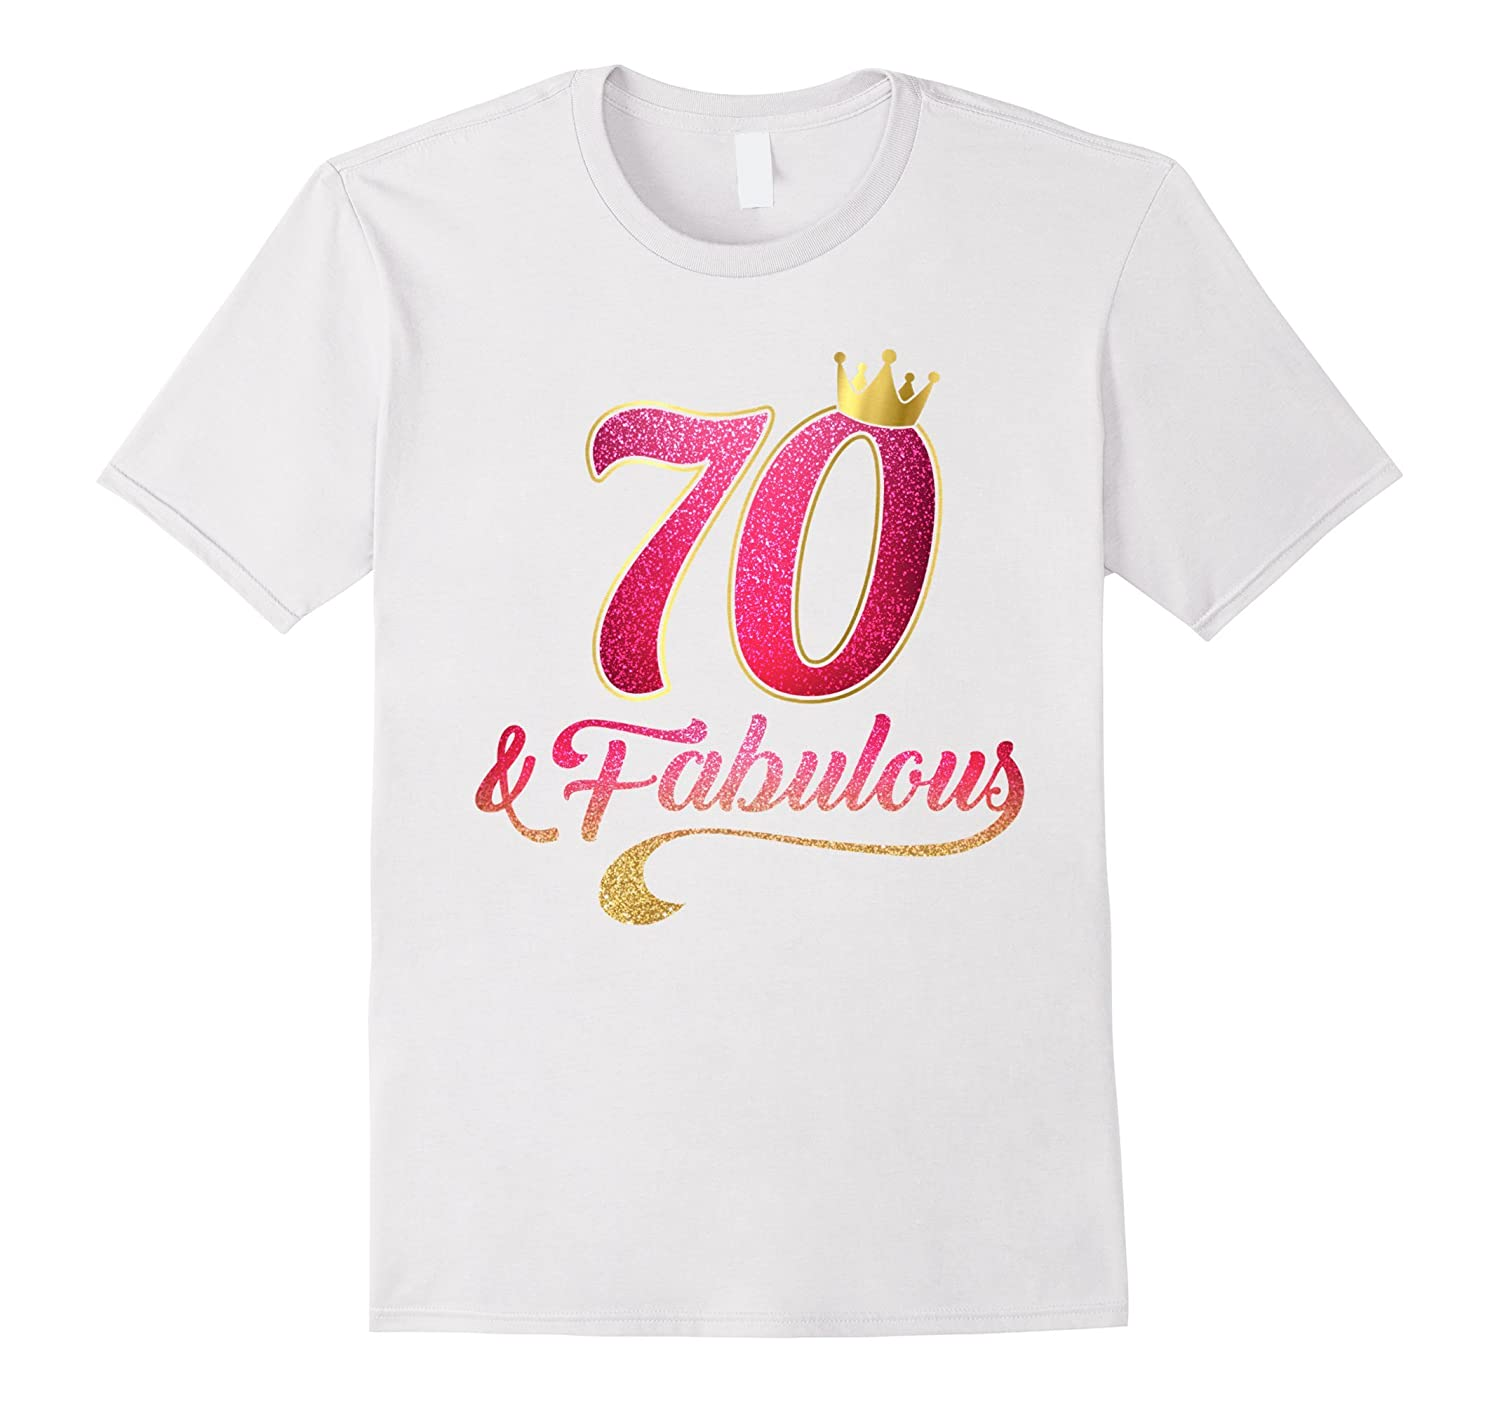 61a6c52ec 70st Birthday Queen Fabulous 70 Years Old T-Shirt-CL – Colamaga